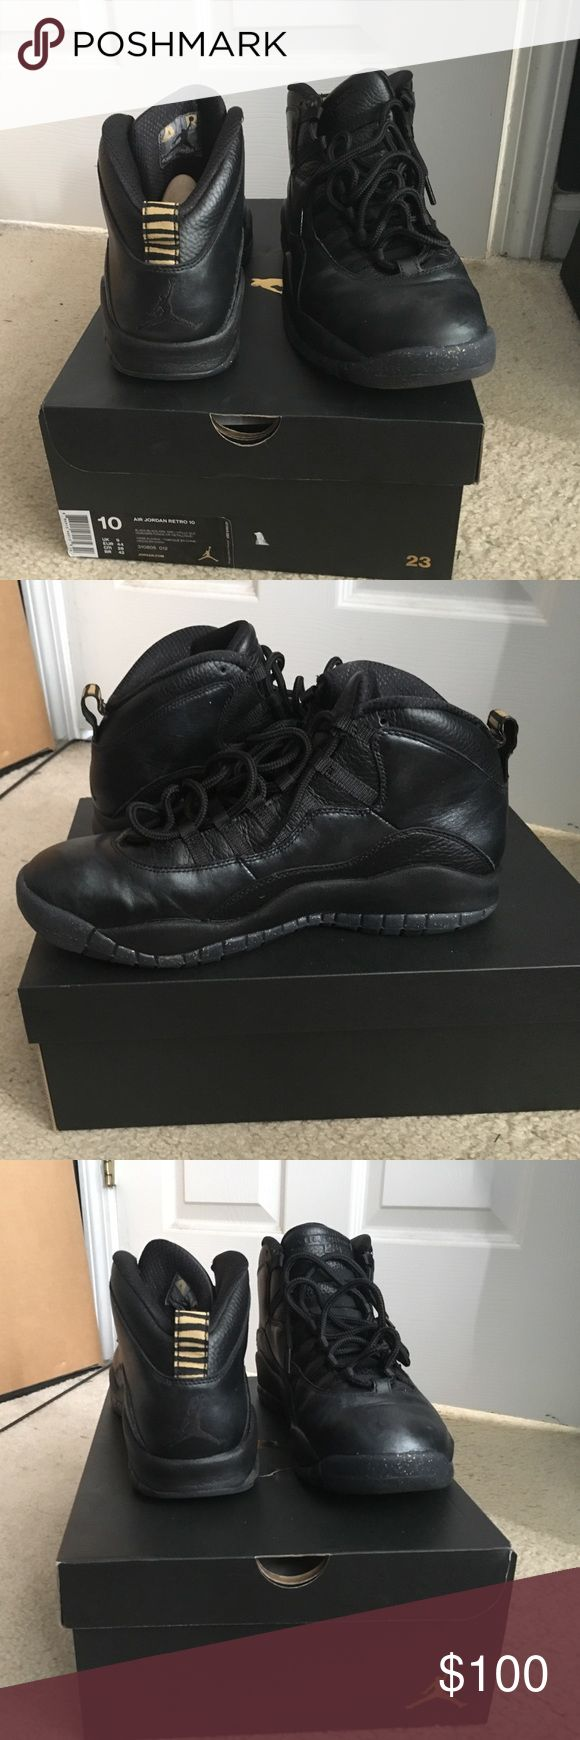 Jordan retro 10 NYC Only worn twice in great condition and 100% authentic Jordan Shoes Athletic Shoes